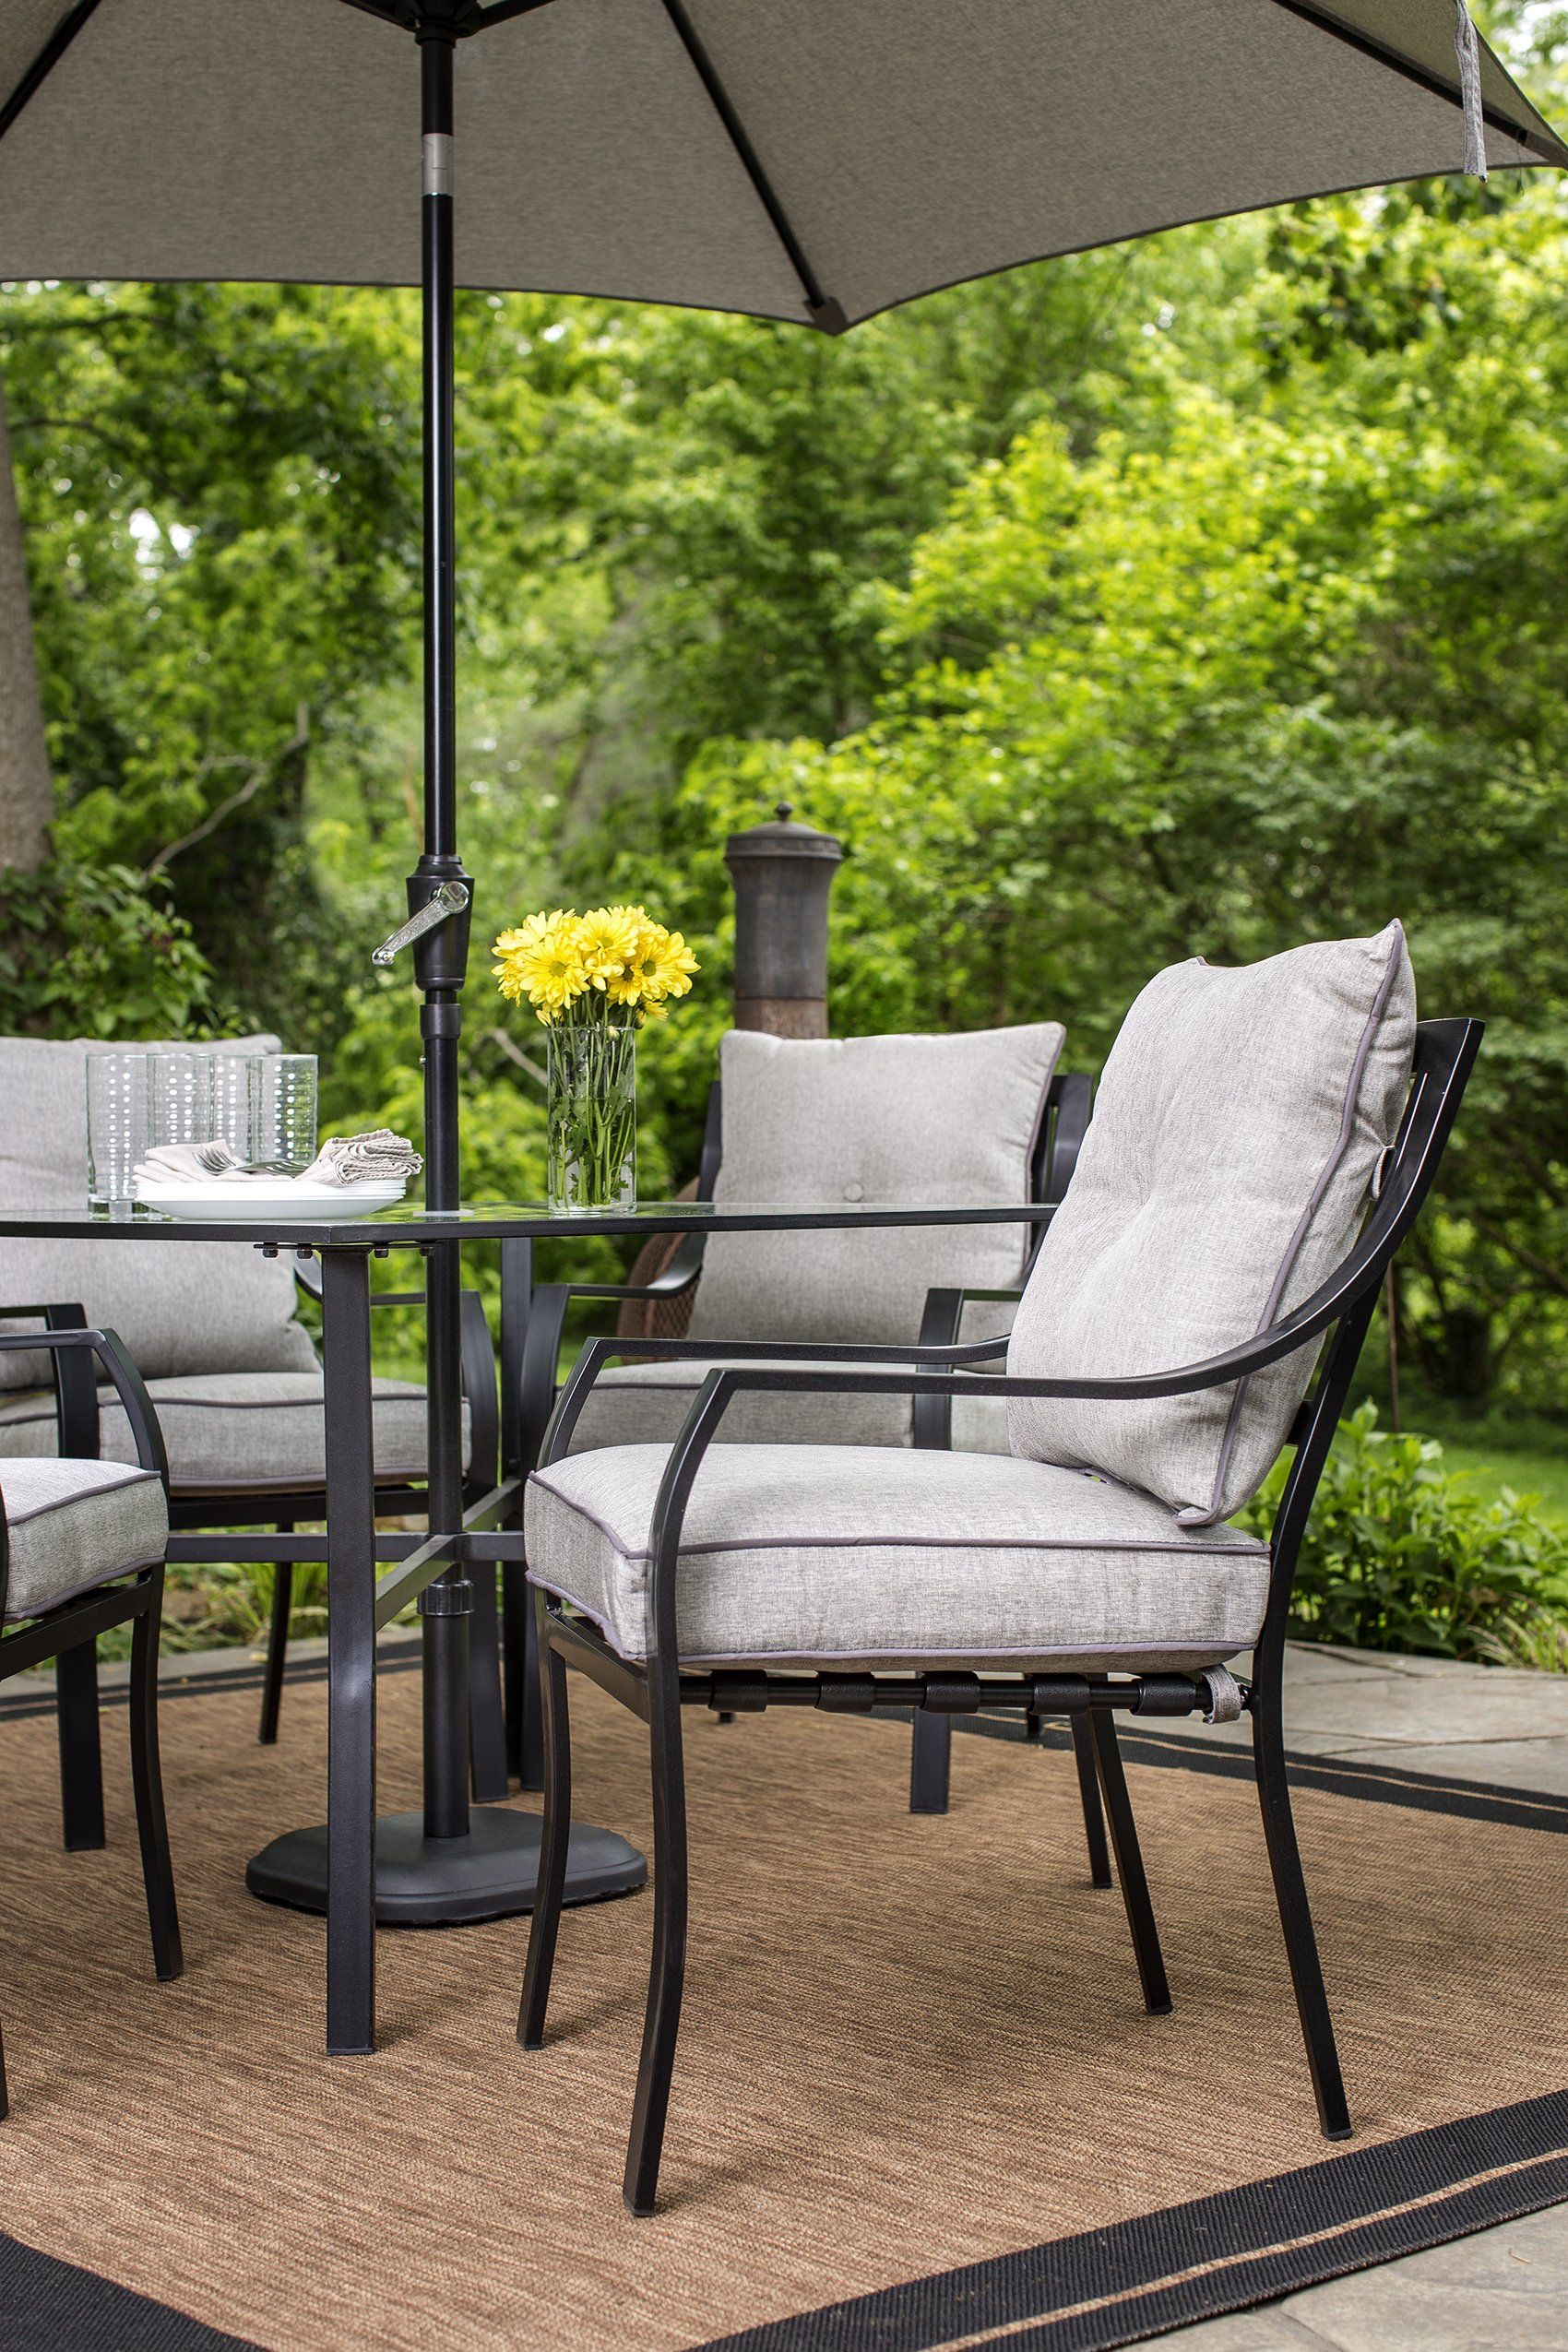 Hanover Lavallette 7 Piece Outdoor Dining Set with Table